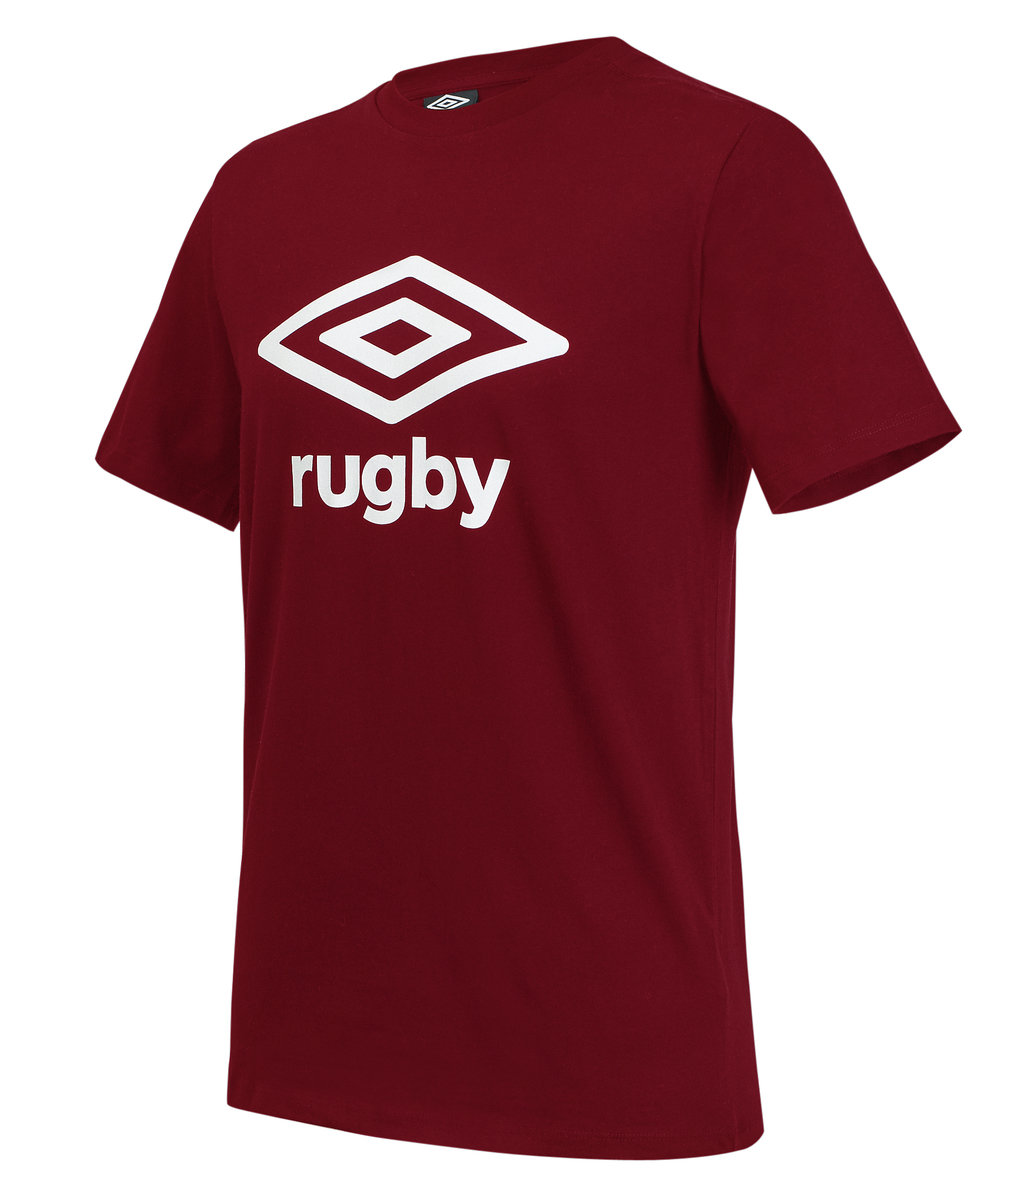 RUGBY T-SHIRT JUNIOR